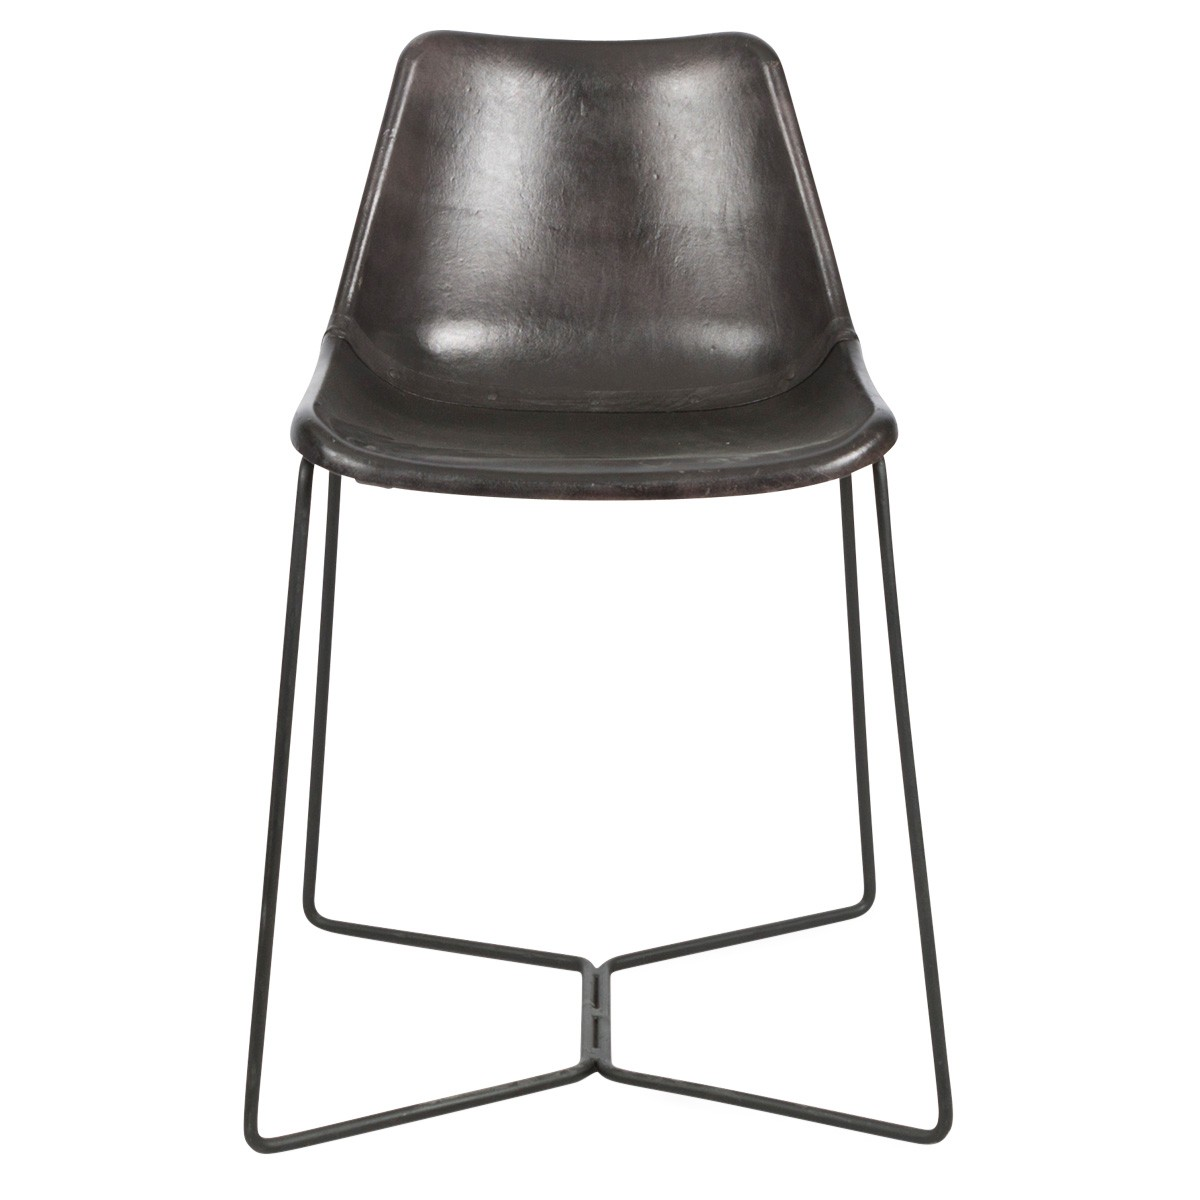 Elm Leather Dining Chair with Iron Legs, Black